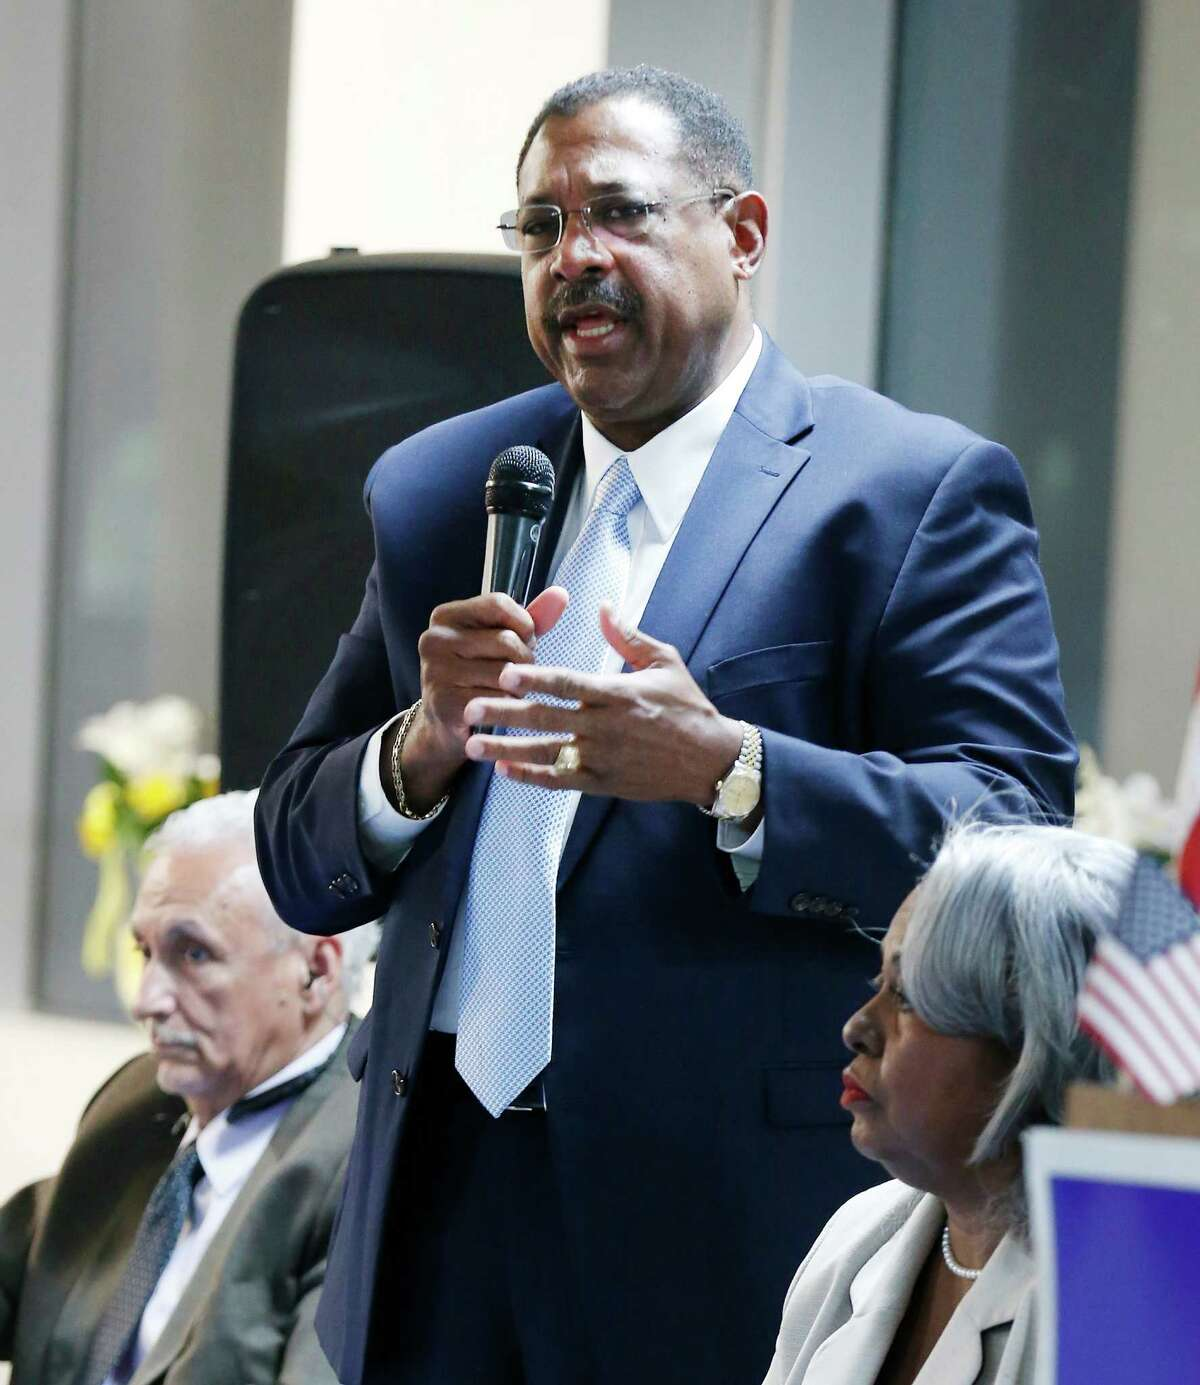 Candidate Byron Miller is vying for Ruth Jones McClendon's Texas House District 120 seat against five other candidates. The group gathered for a town hall meeting at Second Baptist Church on Wednesday, Feb. 3, 2016. The other candidates are: Mario Salas, Barbara Gervin-Hawkins, Lou Miller, Art Hall and LaTronda Darnell. Voters will decide on March 1 who will replace McClendon, who served for 19 years in the Texas House, as she announced her decision not to run for re-election after battling health issues including lung cancer. (Kin Man Hui/San Antonio Express-News)